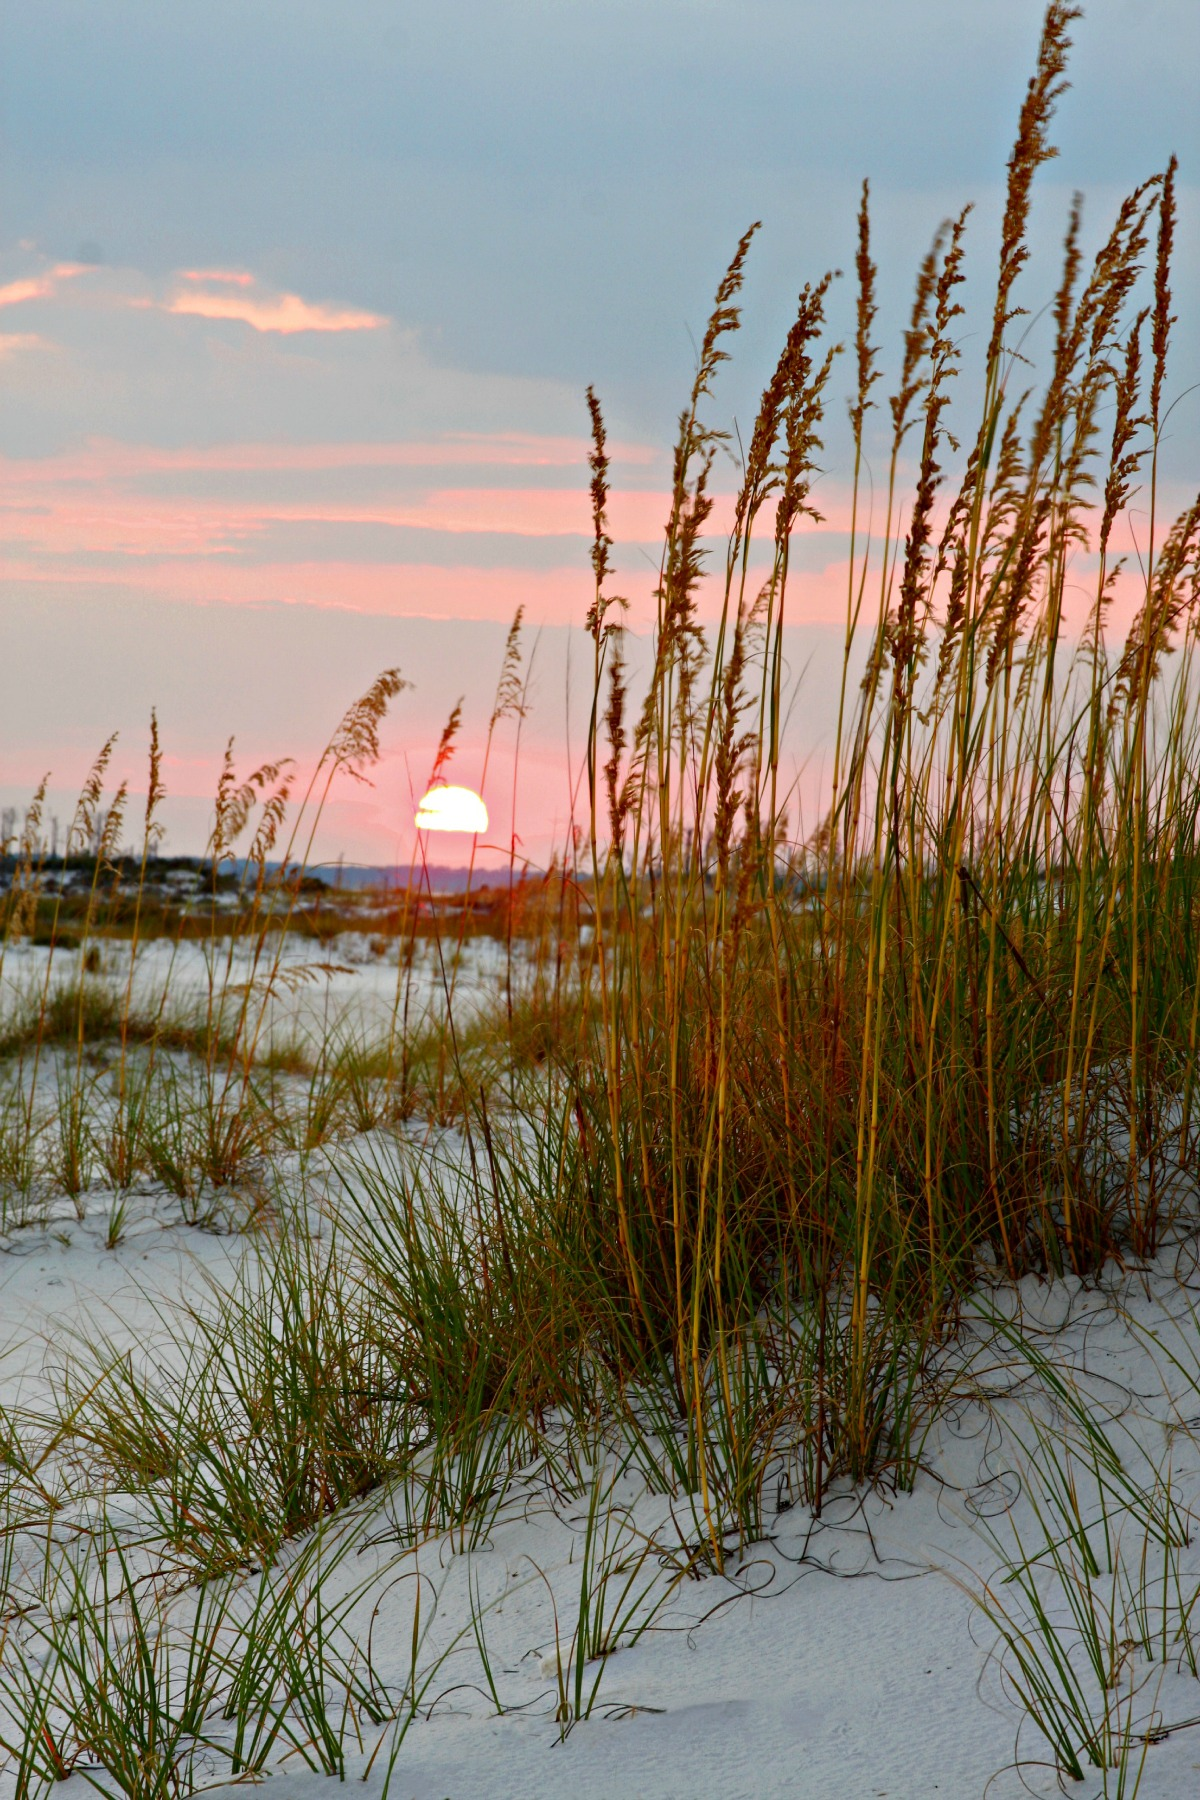 sunset over dunes and sea oats